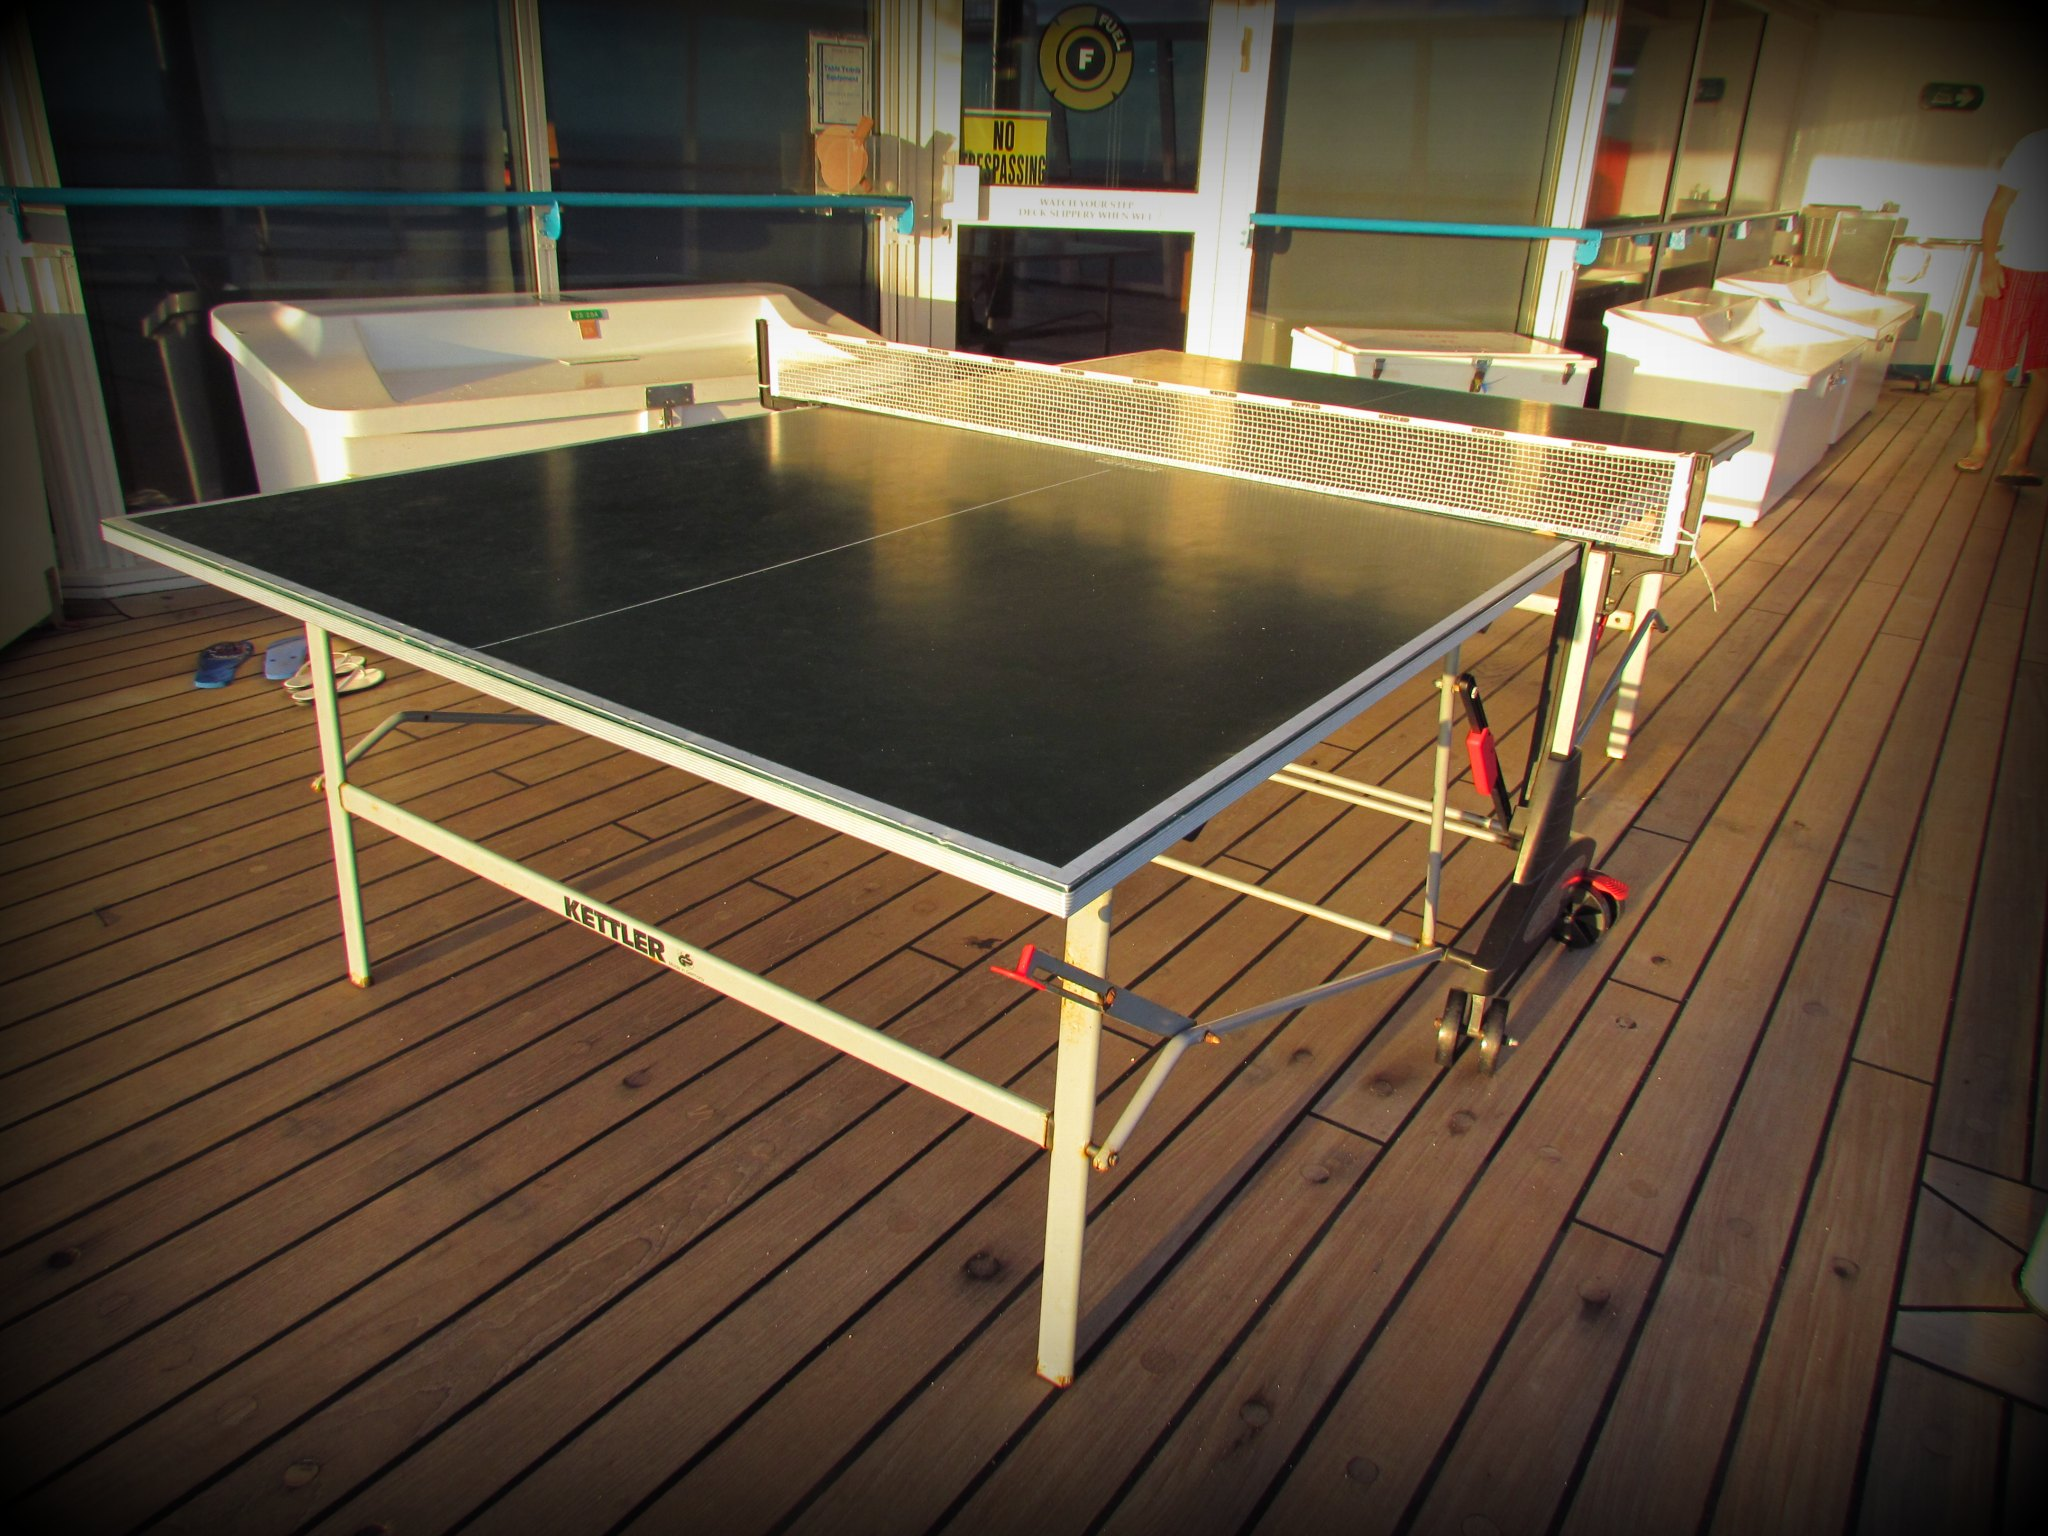 Majesty-Of-The-Seas-Deck-12-Pinp-Pong